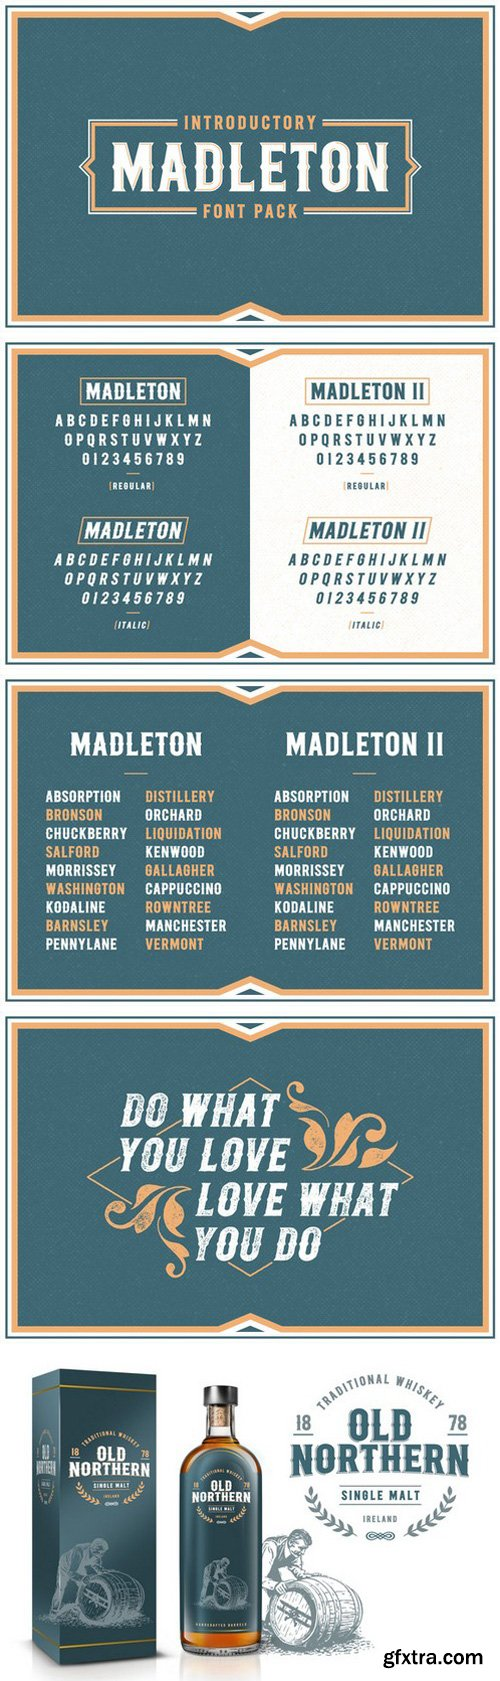 Download CM - Madleton Font Pack - Free | Font packs, Retro ...